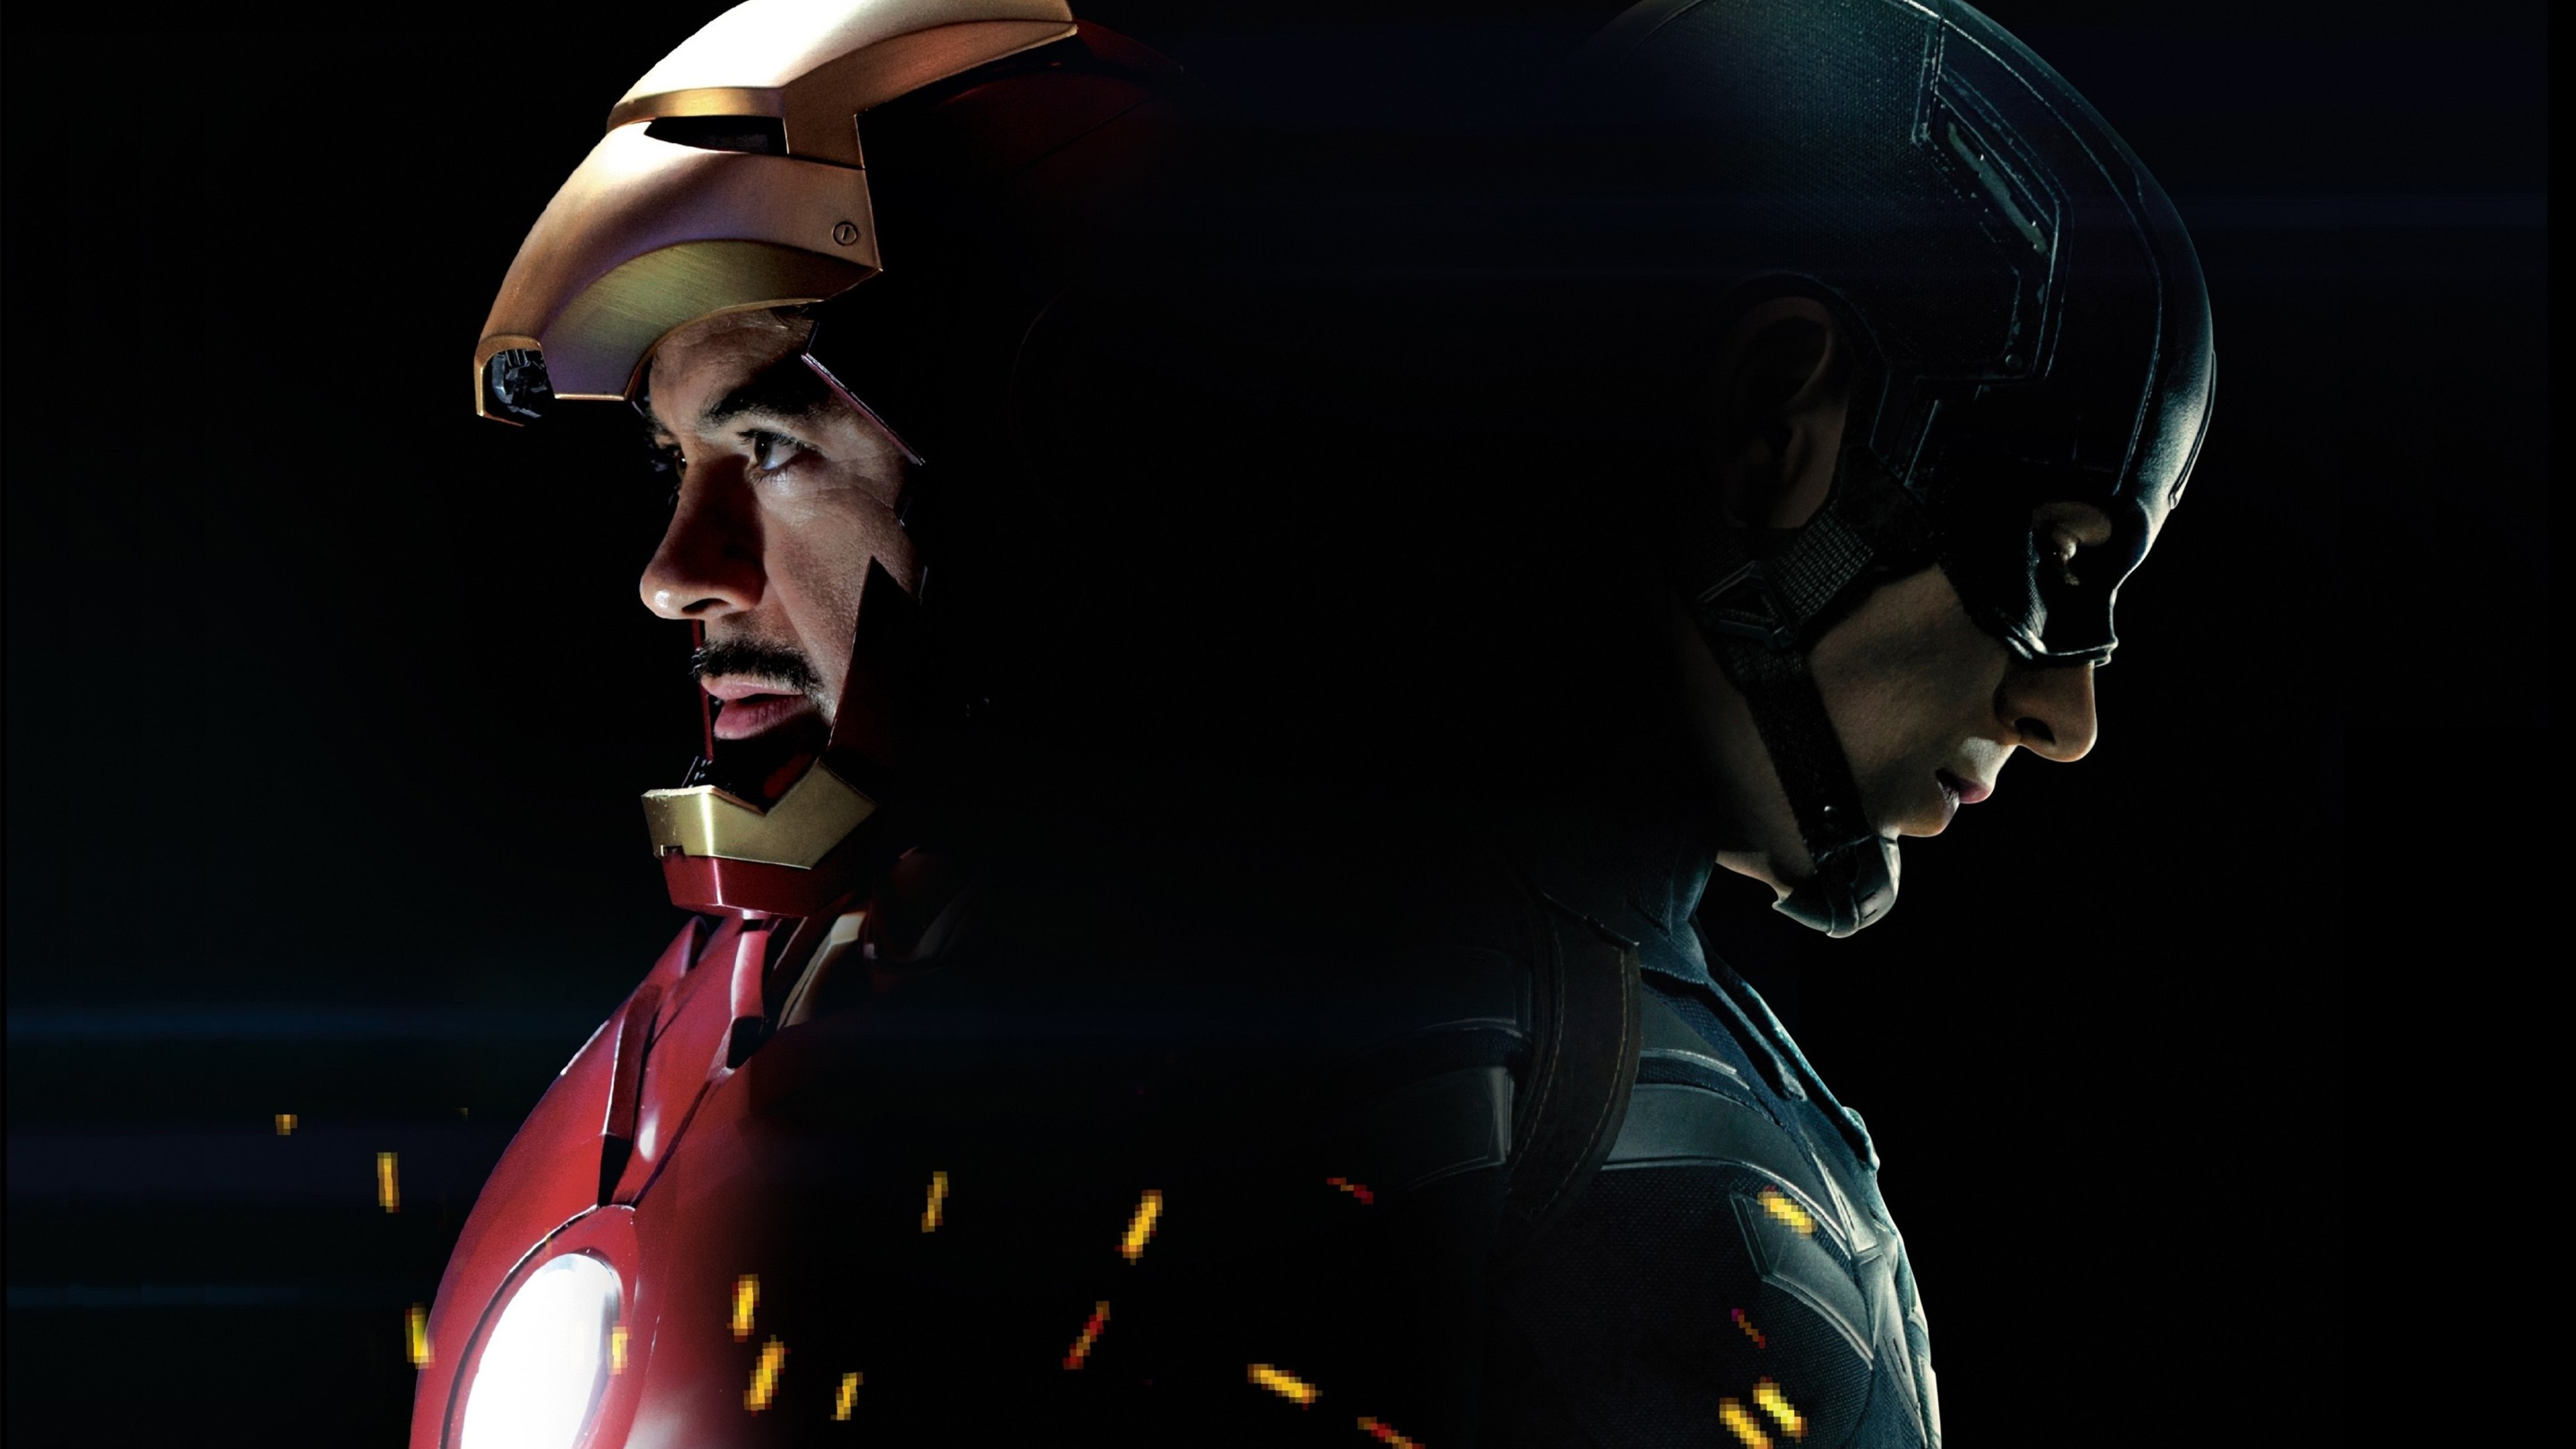 Captain america 3 civil war iron man hd movies 4k for American cuisine movie download